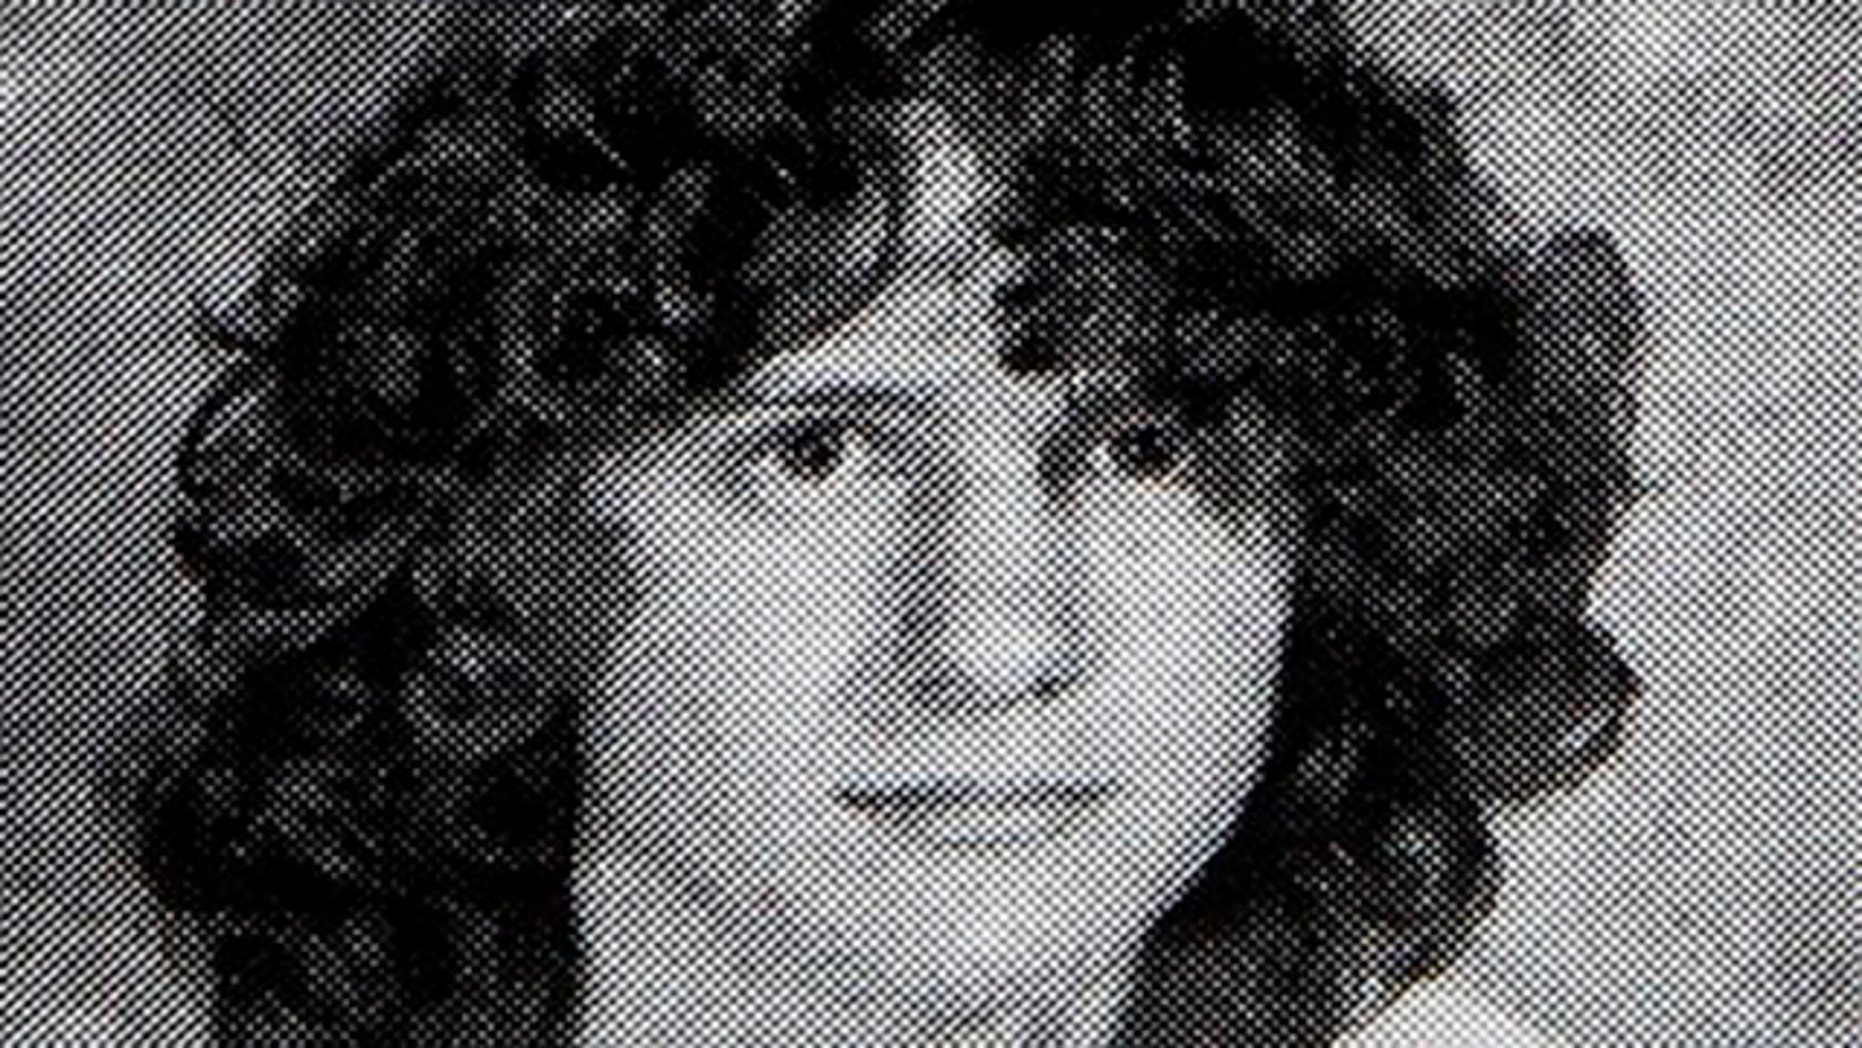 This photo obtained from the 2006 Mountain View High School yearbook shows Jared L. Loughner. U.S. Rep. Gabrielle Giffords of Arizona was shot in the head Saturday when an assailant opened fire outside a grocery store during a meeting with constituents, killing at least five people. Police say that Jared L. Loughner has been taken into custody in conjunction with the shooting incident.